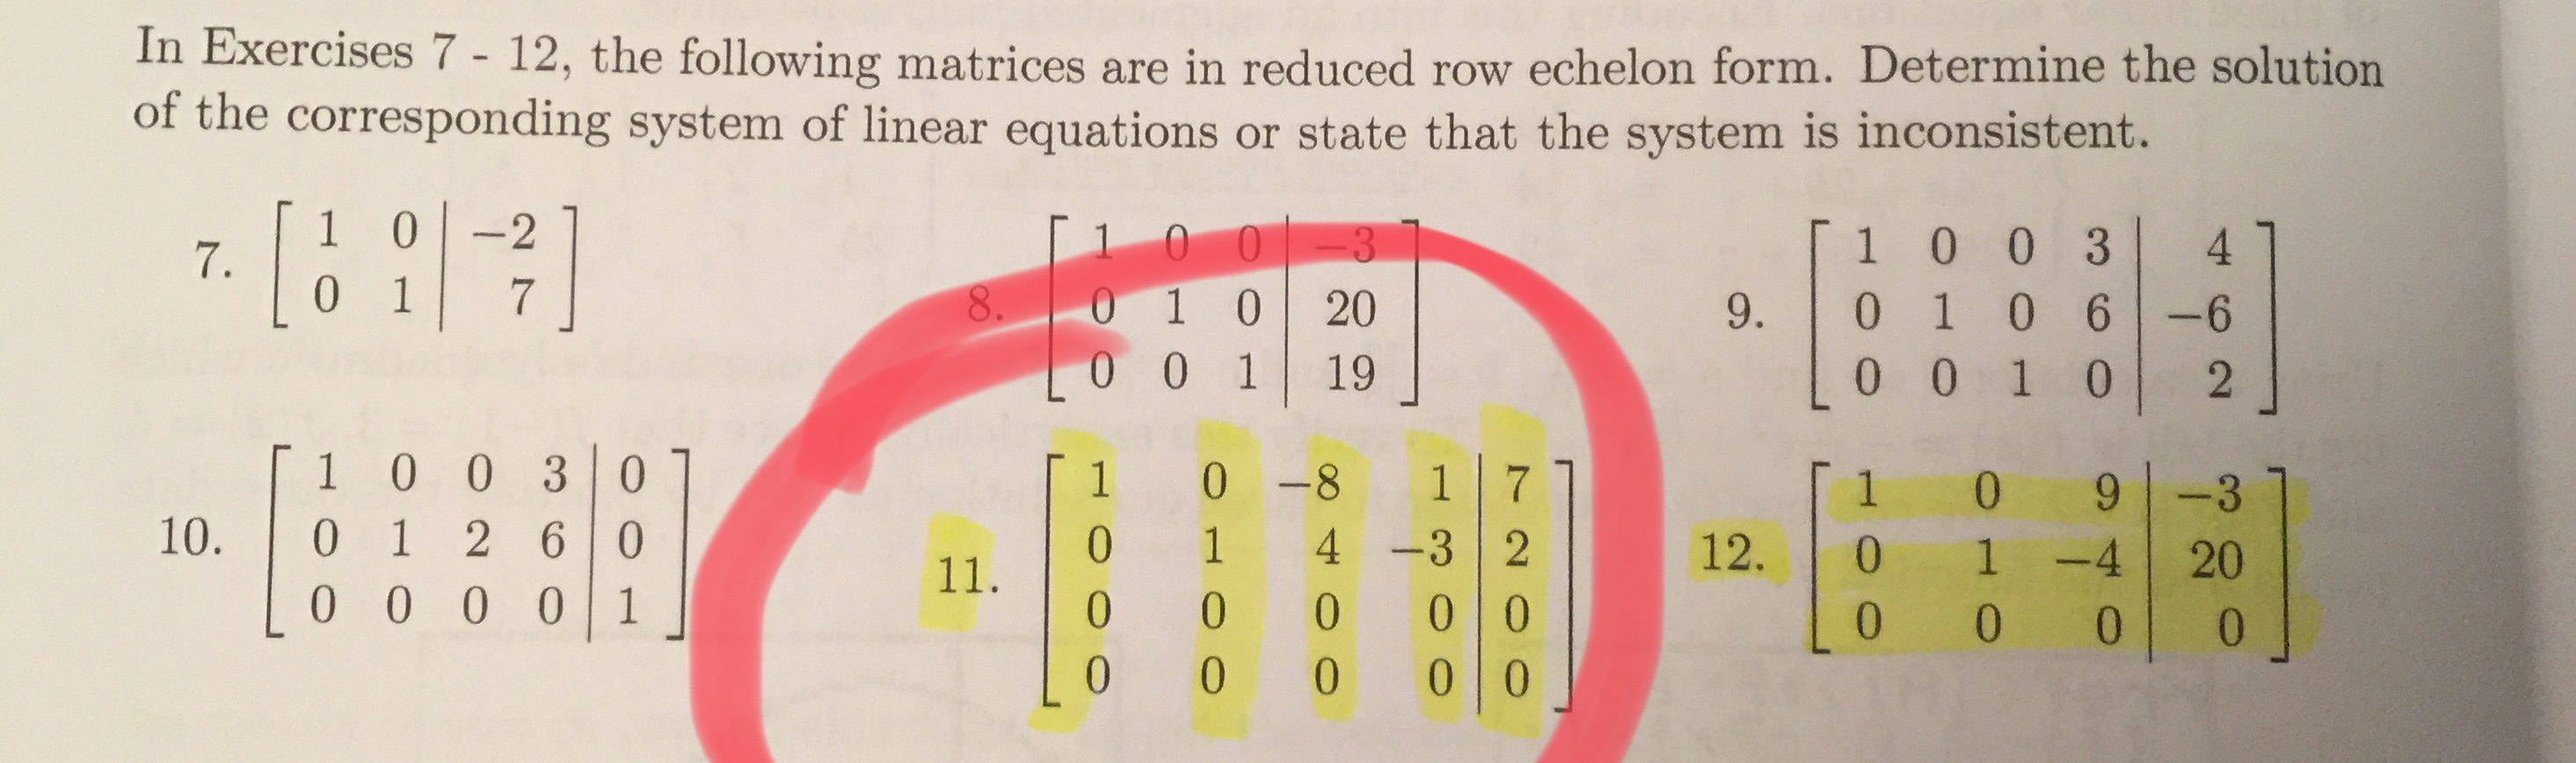 In Exercises 7- 12, the following matrices are in reduced row echelon form. Determine the solution of the corresponding system of linear equations or state that the system is inconsistent. 1 7. 0 0 -2 0 O-3 1 0 0 3 4 1 7 O 1 0 0 8 0 20 0 1 0 6 9. -6 1 19 0 0 1 0 2 1 0 0 3 0 2 6 0 1 0 -8 1 1 0 -3 10. 0 1 4 -3 2 12. 1 -4 20 11. 0 0 0 0 1 0 0 0 0 0 0 0 0 0 0 7200 OHOO O0O